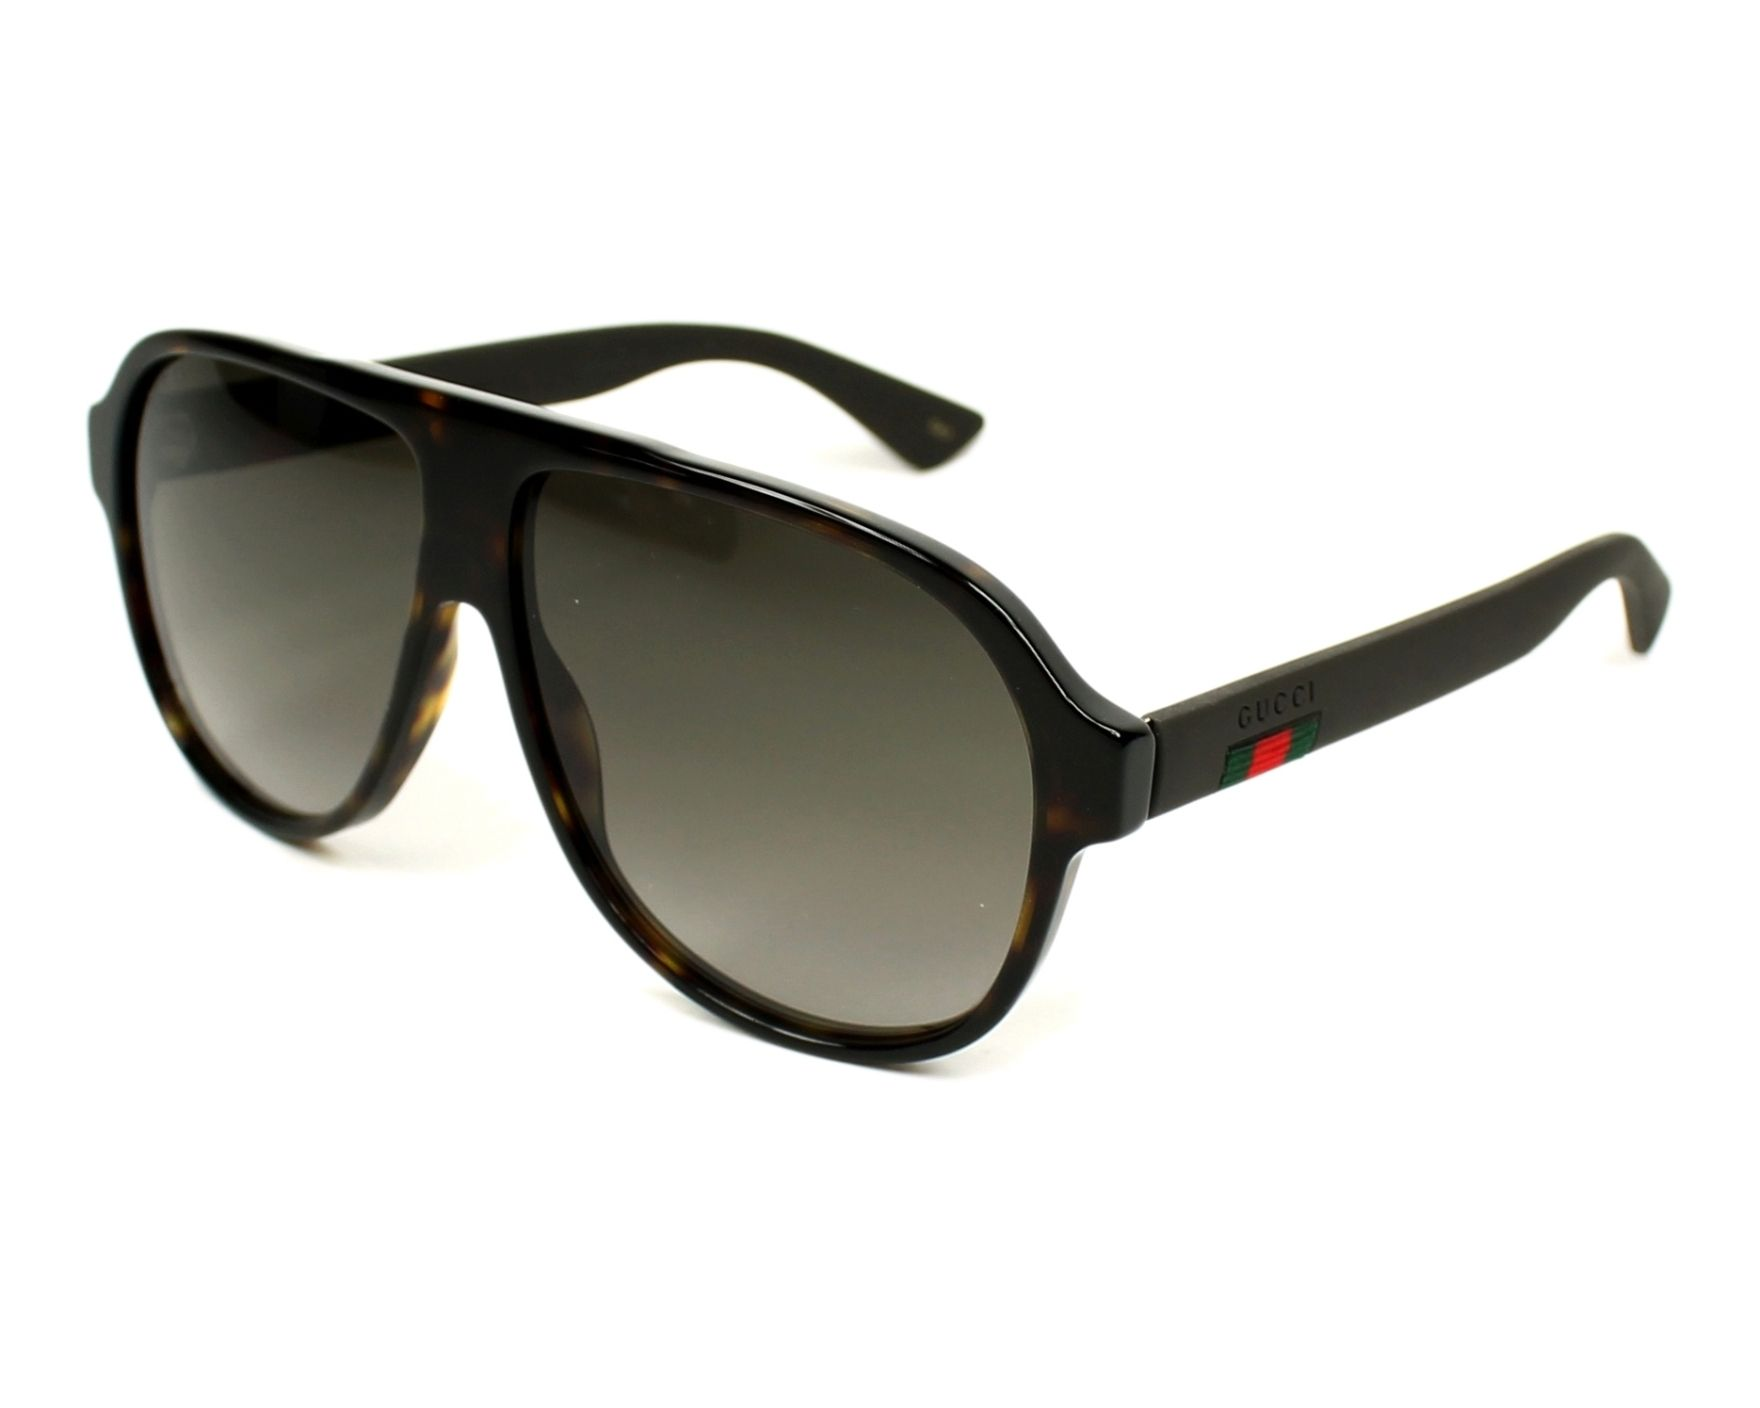 Gucci Sunglasses Havana With Grey Lenses Gg 0009 S 003 Visionet Us